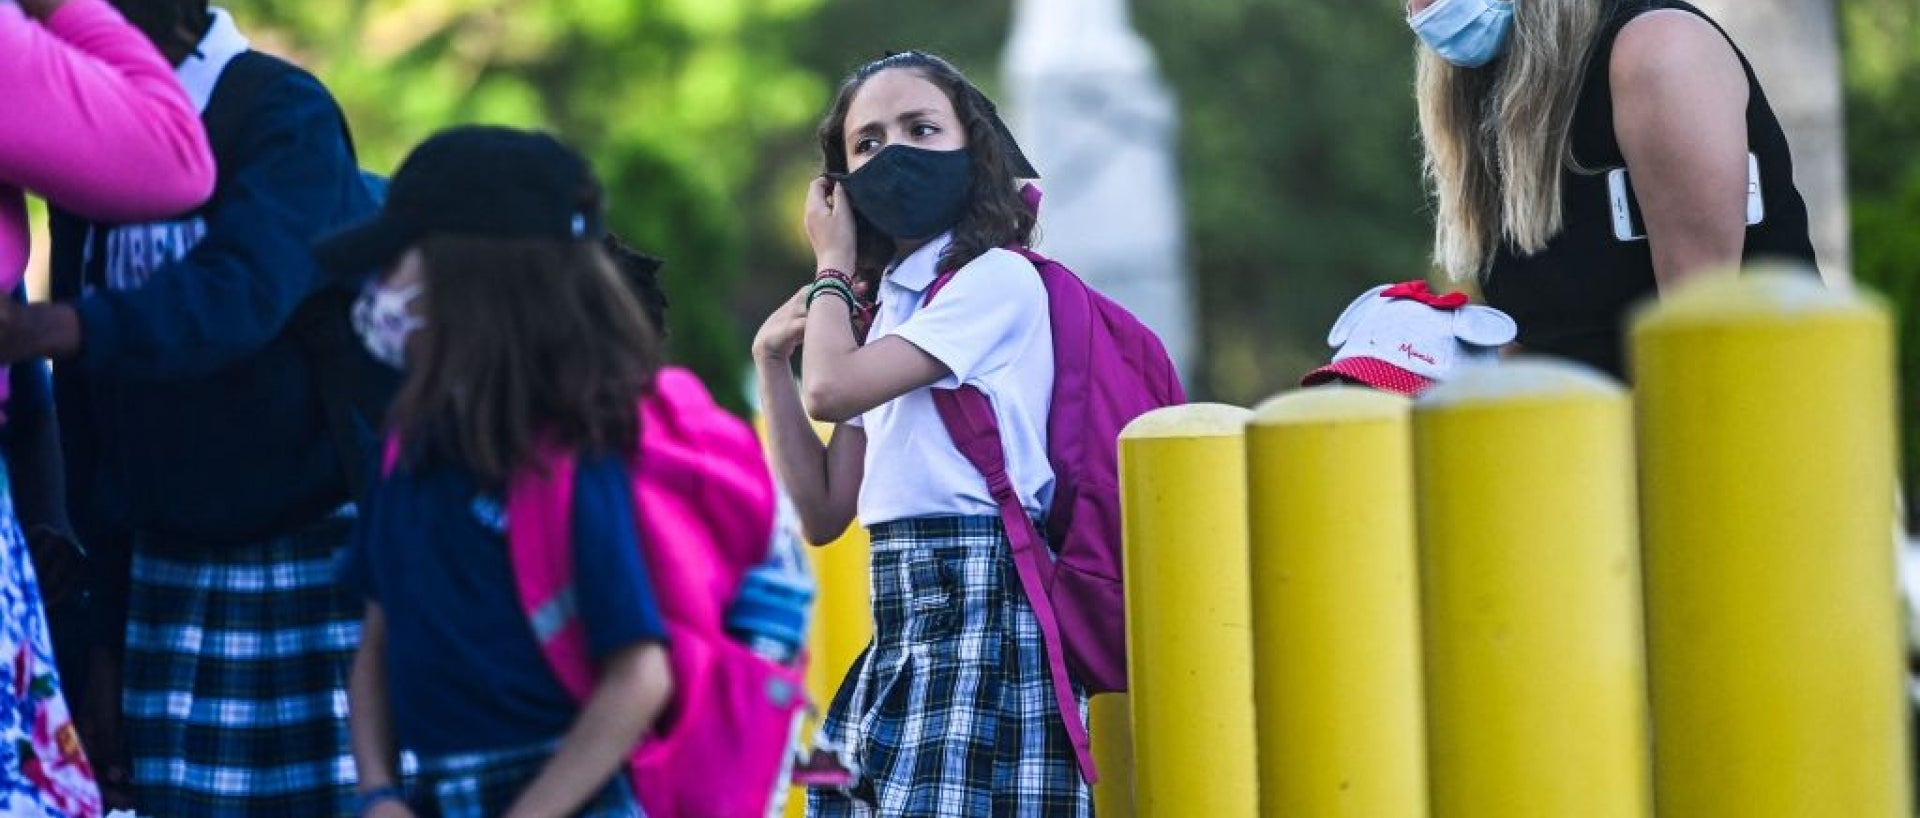 Children outside in uniforms and masks